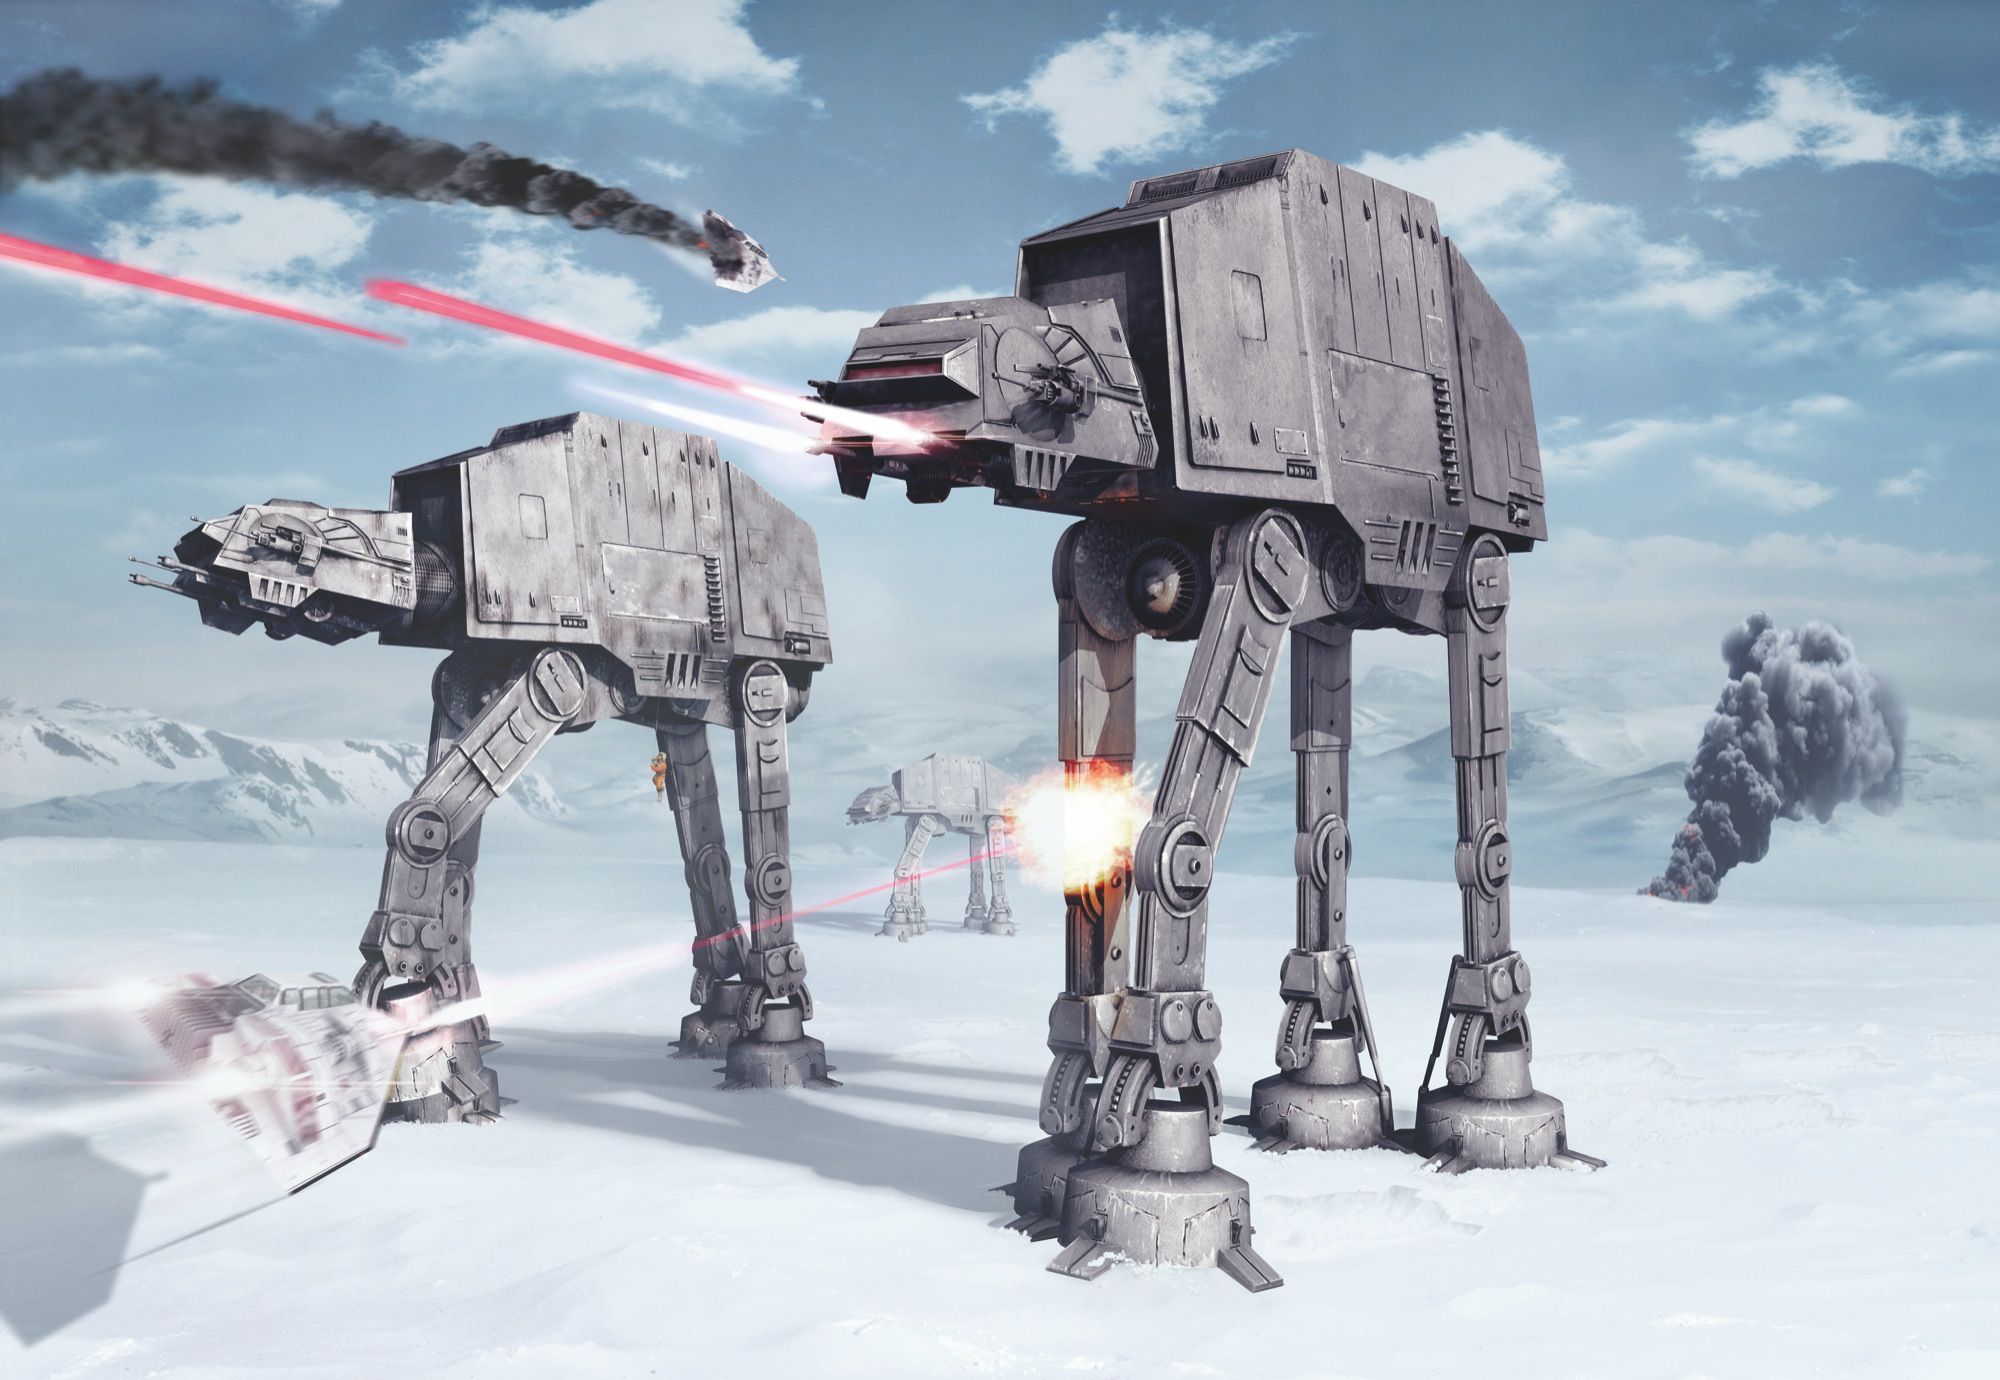 Photomural Quot Star Wars Battle Of Hoth Quot From Komar